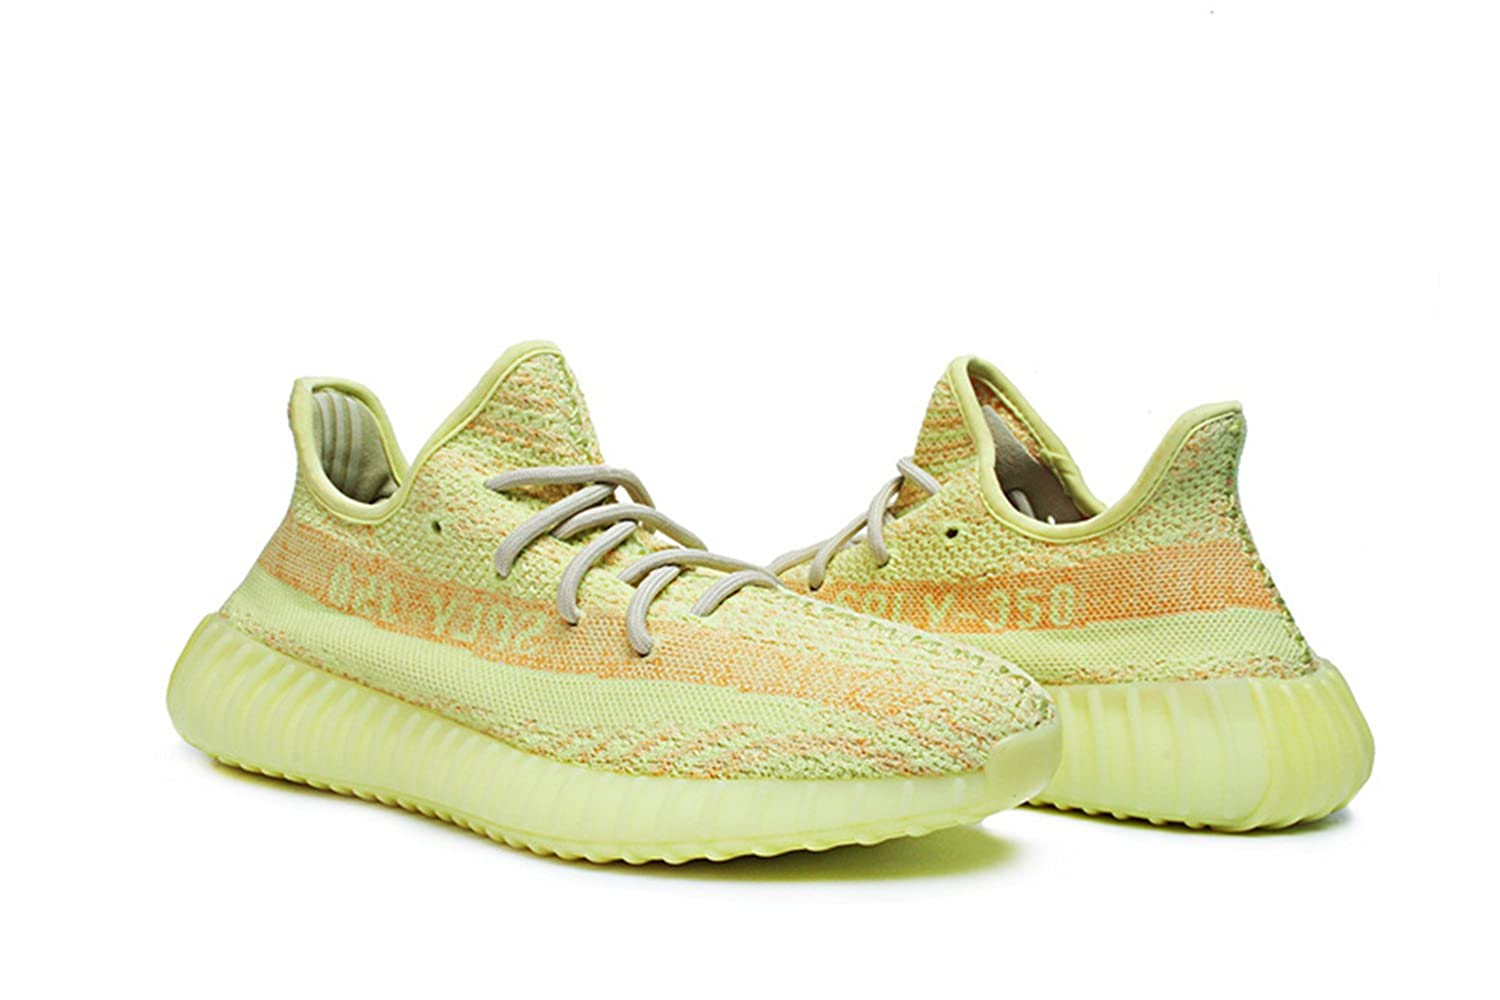 Adidas Yeezy 350 Boost V2 Yellow Green